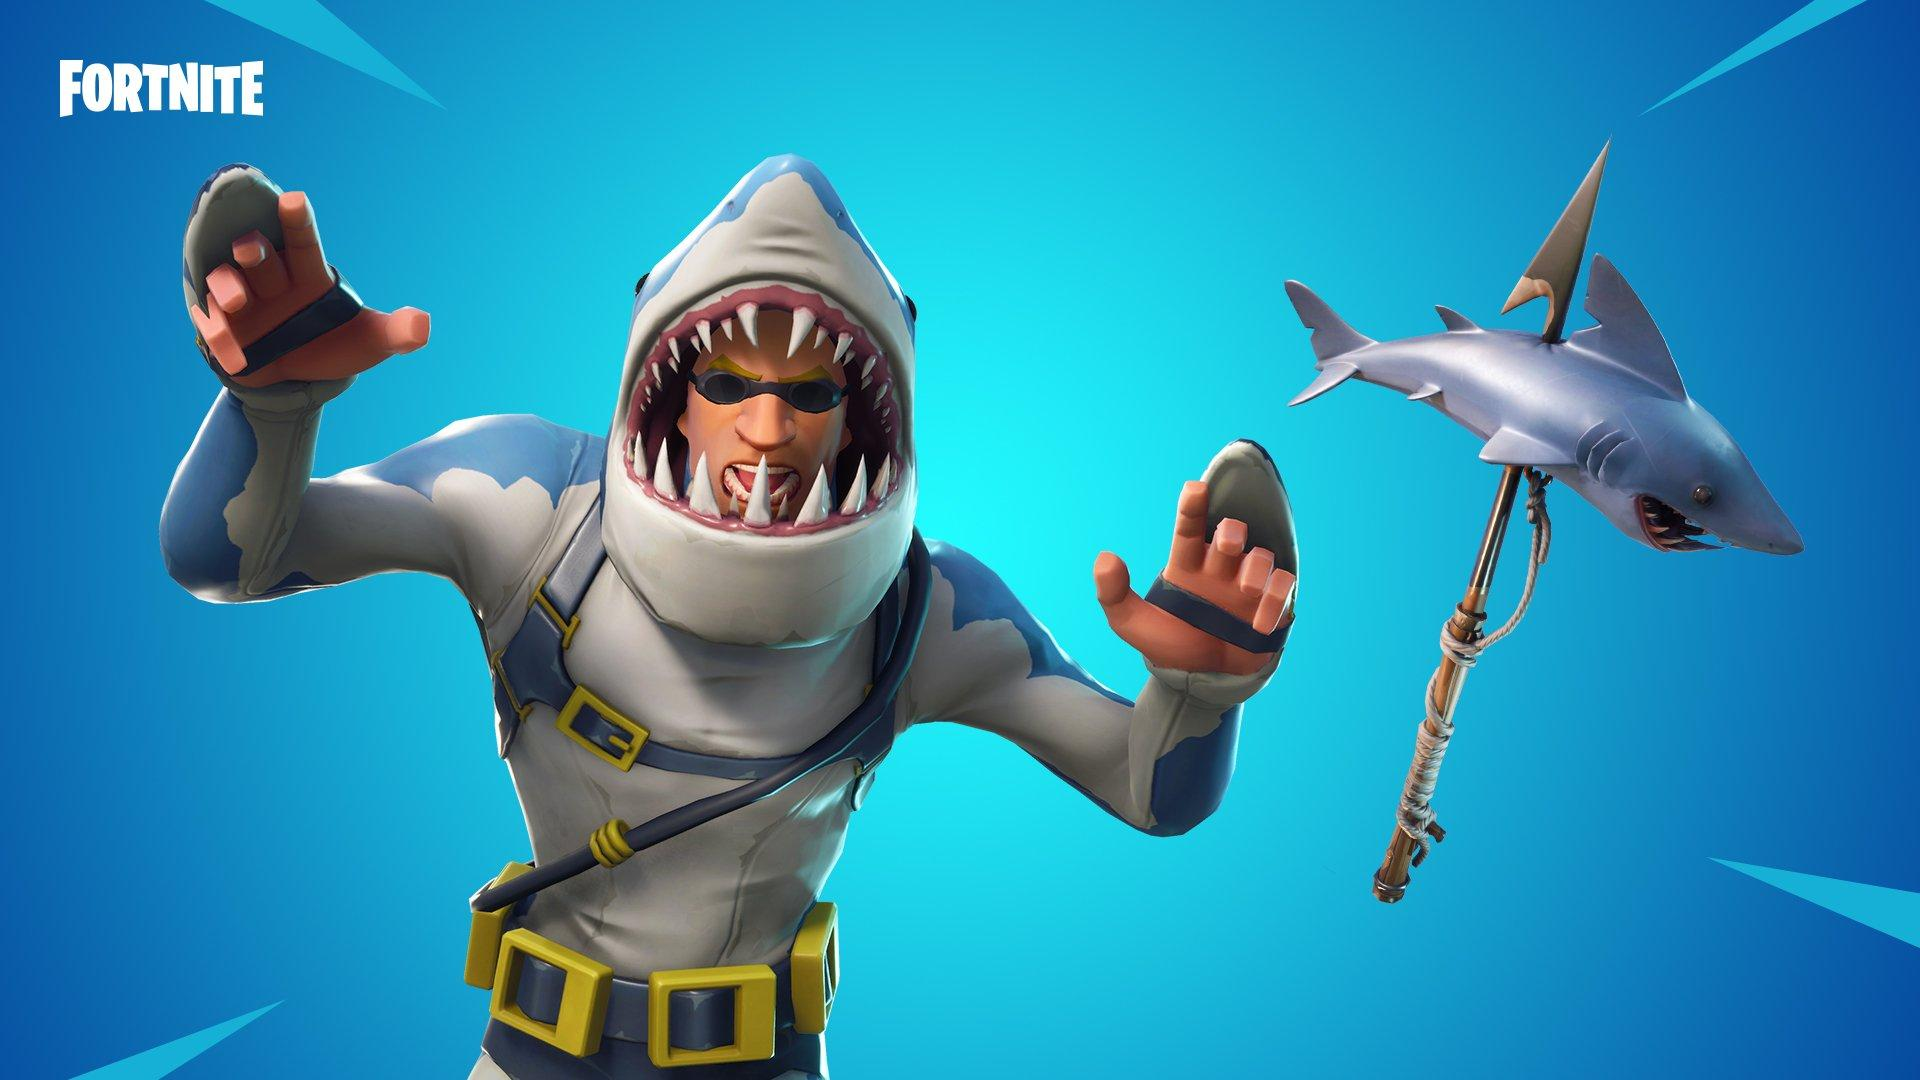 The new Chomp Sr. outfit with matching pickaxe